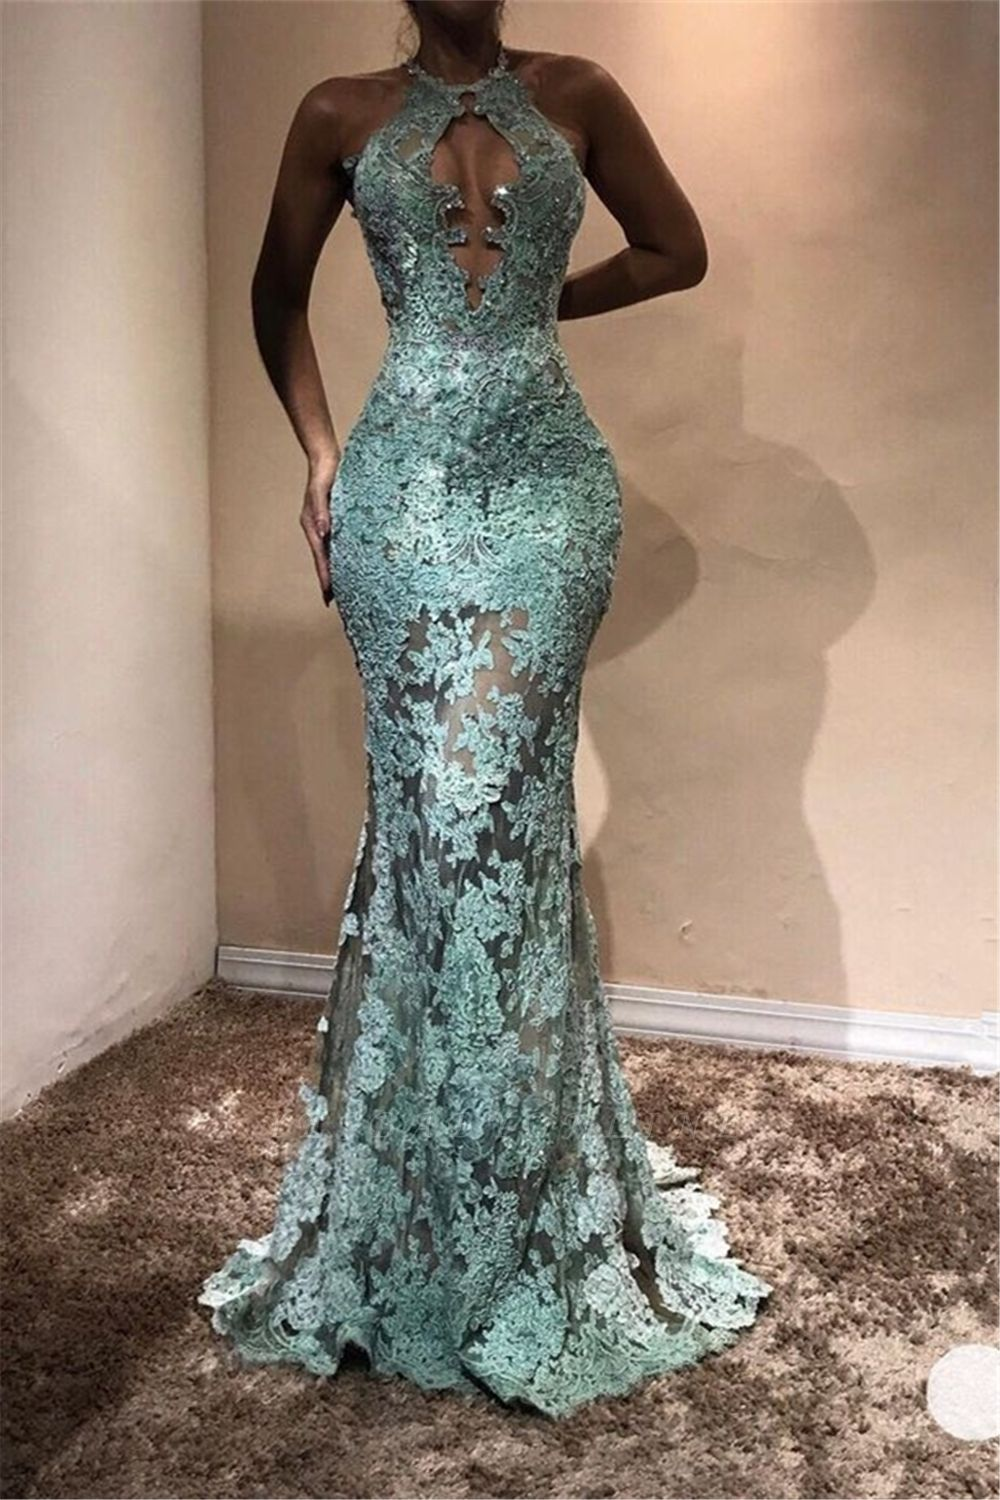 Halter Sleeveless Mermaid Prom Dresses | Lace Appliques Long Evening Gowns